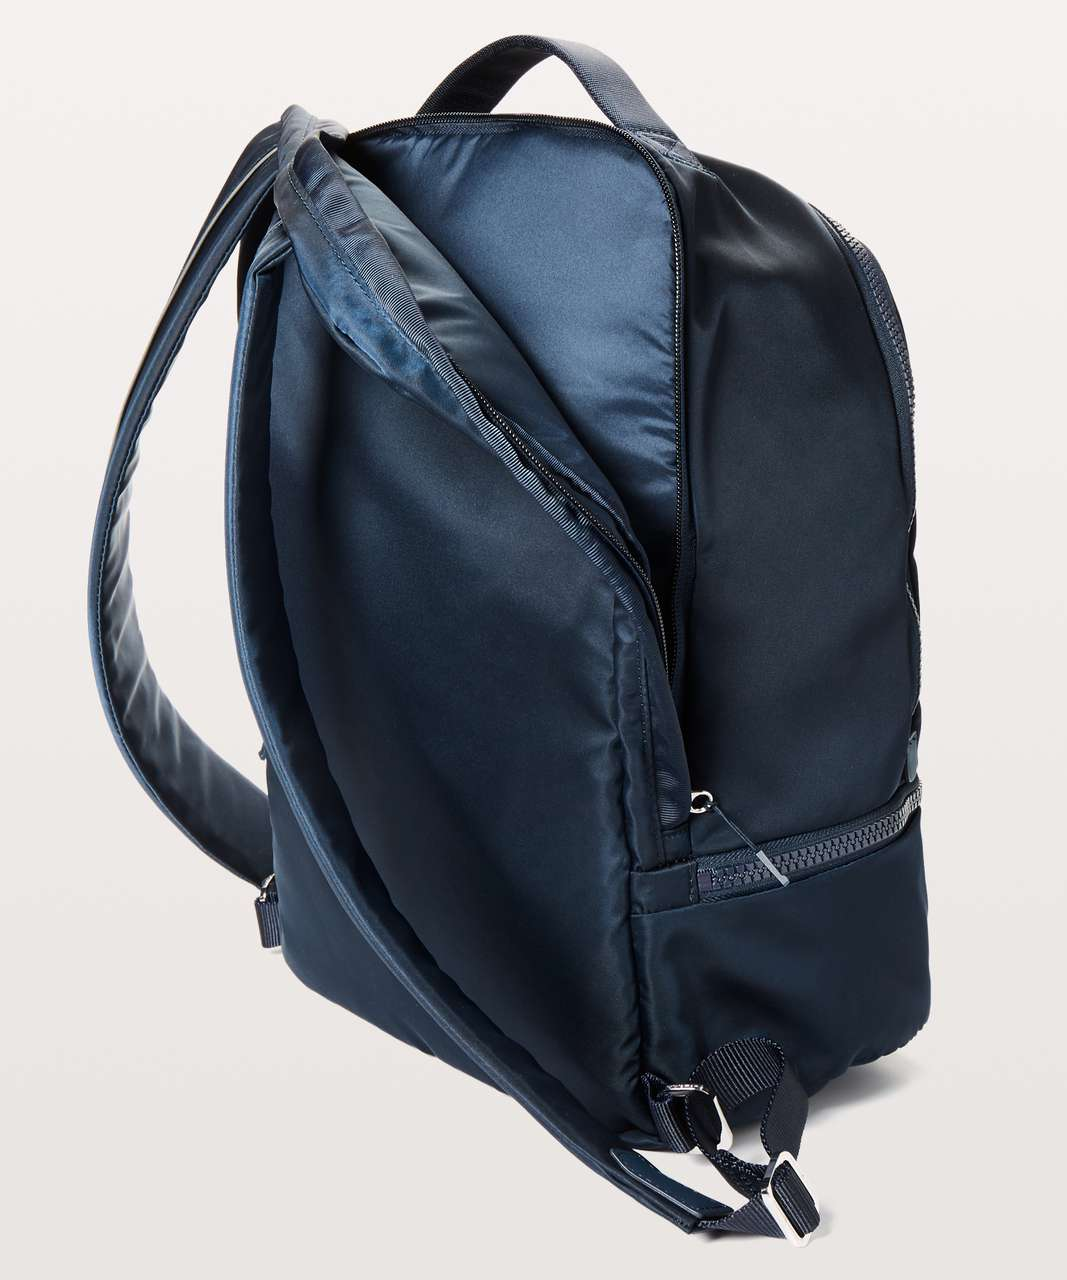 Lululemon City Adventurer Backpack *17L - True Navy (First Release)